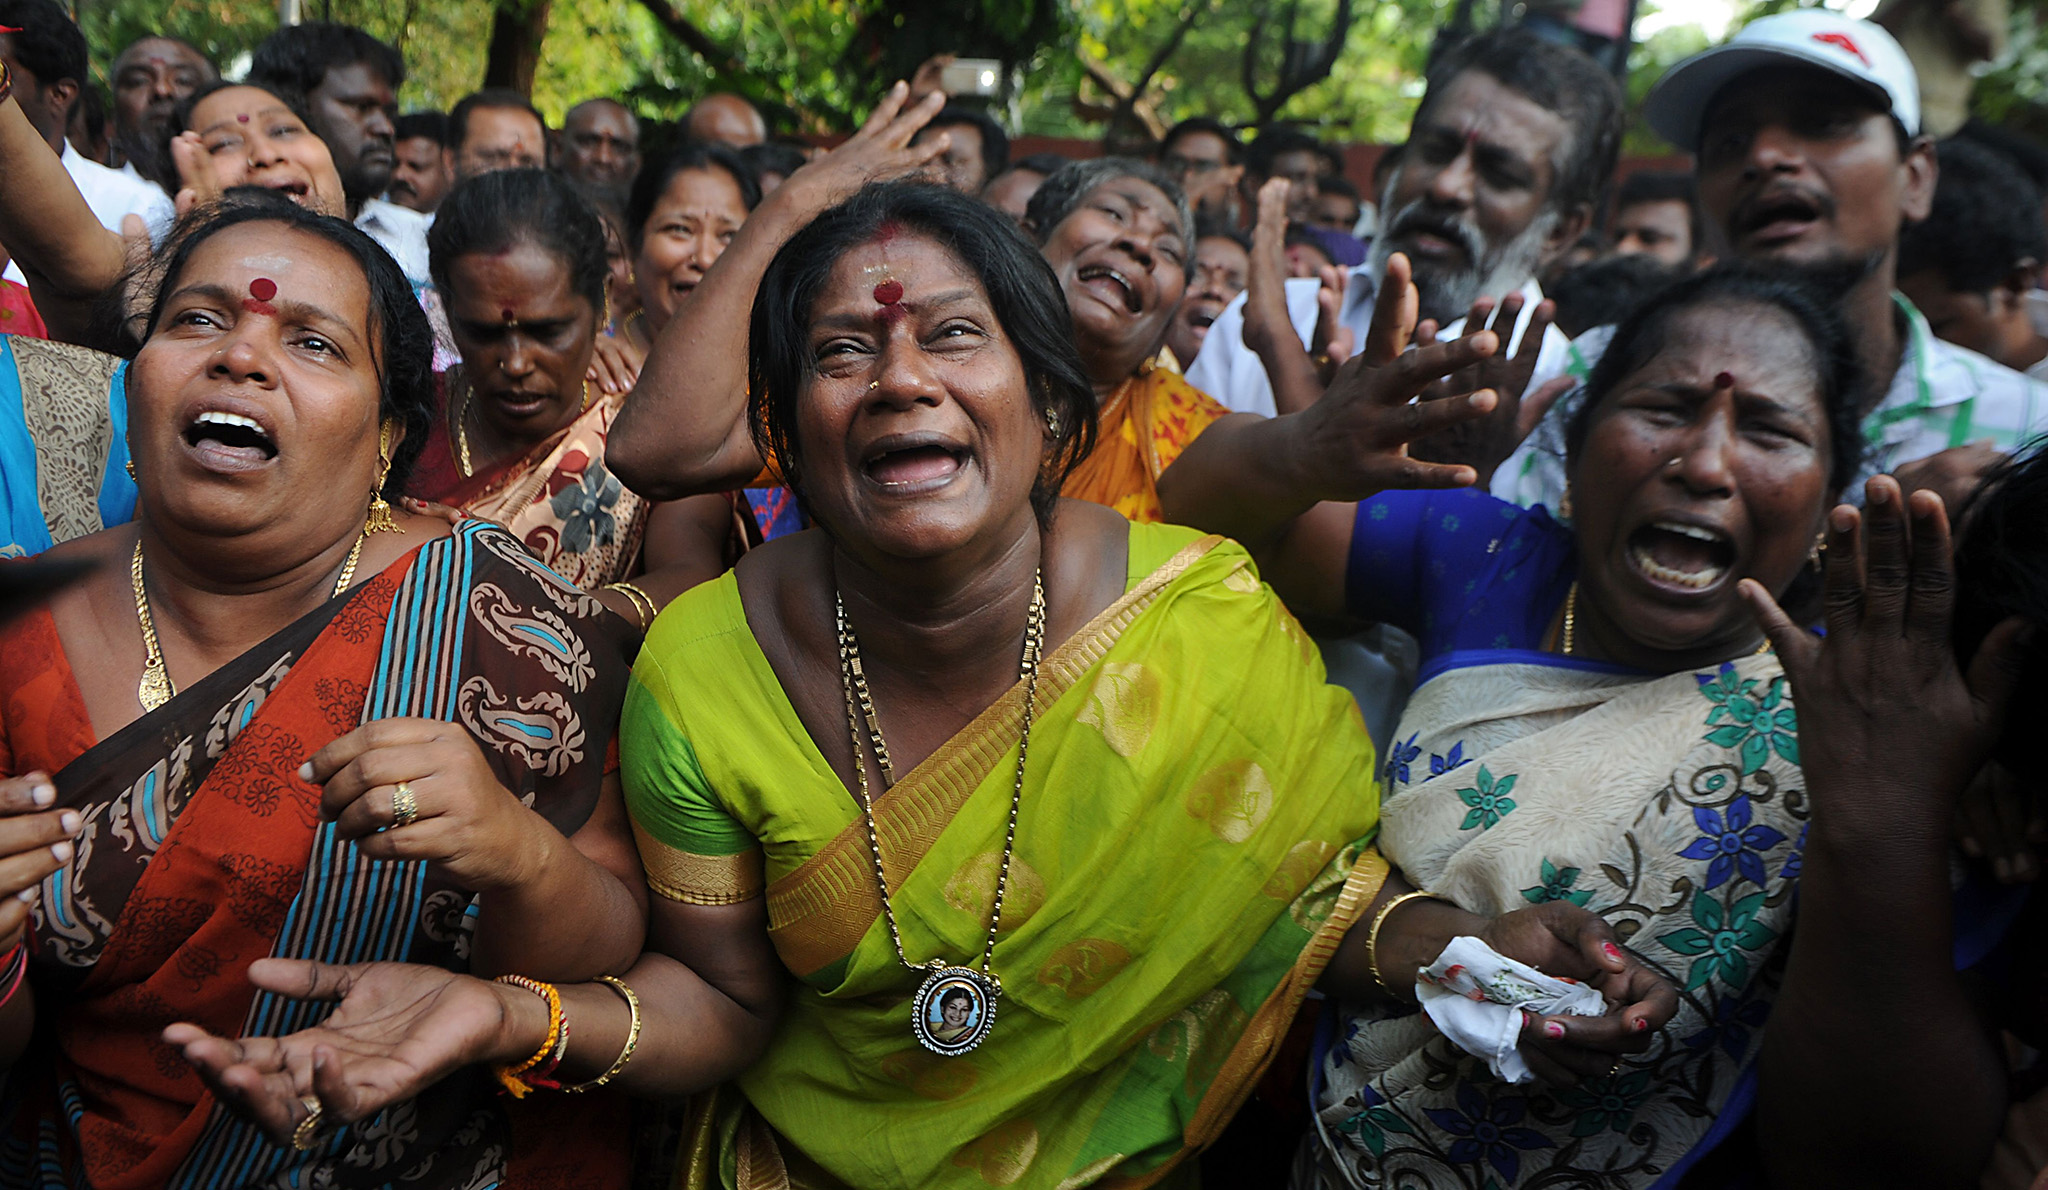 Indian supporters of the Chief Minister of Tamil Nadu Jayalalithaa Jayaram react outside the hospital where she is being treated after false reports that she had died in Chennai on December 5, 2016.  Scuffles broke out December 5 outside the hospital where one of India's most popular political leaders Jayalalithaa Jayaram is on life support after suffering a cardiac arrest. / AFP PHOTO / ARUN SANKARARUN SANKAR/AFP/Getty Images